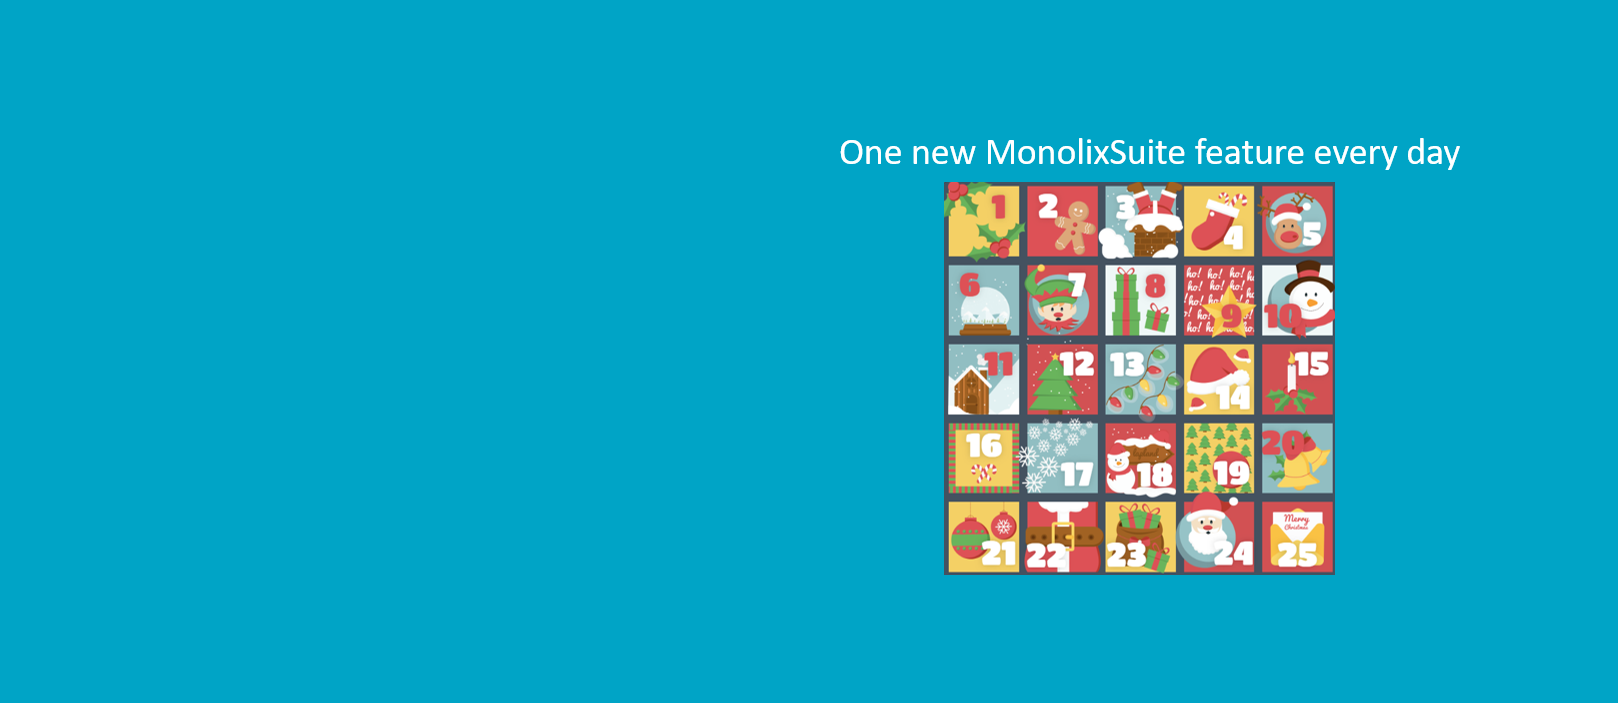 MonolixSuite 2020 advent calendar